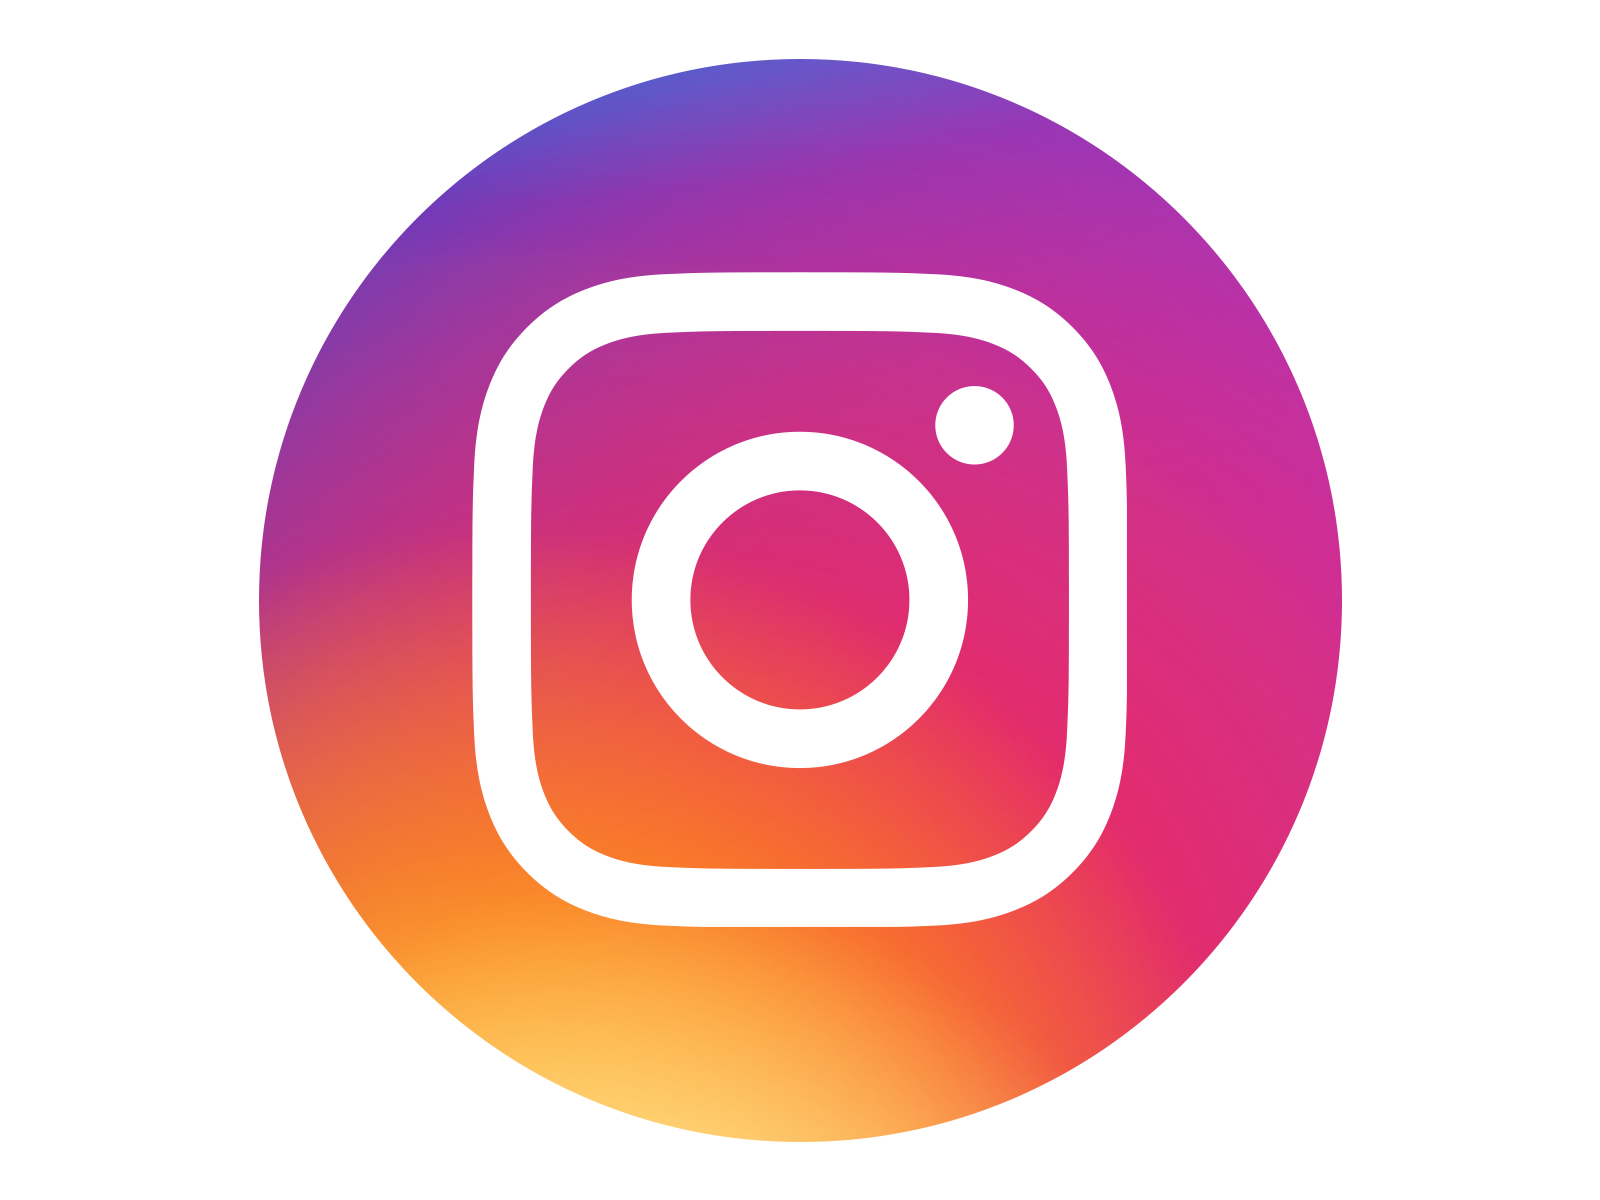 Instagram Logo PNG Transparent & SVG Vector - Freebie Supply